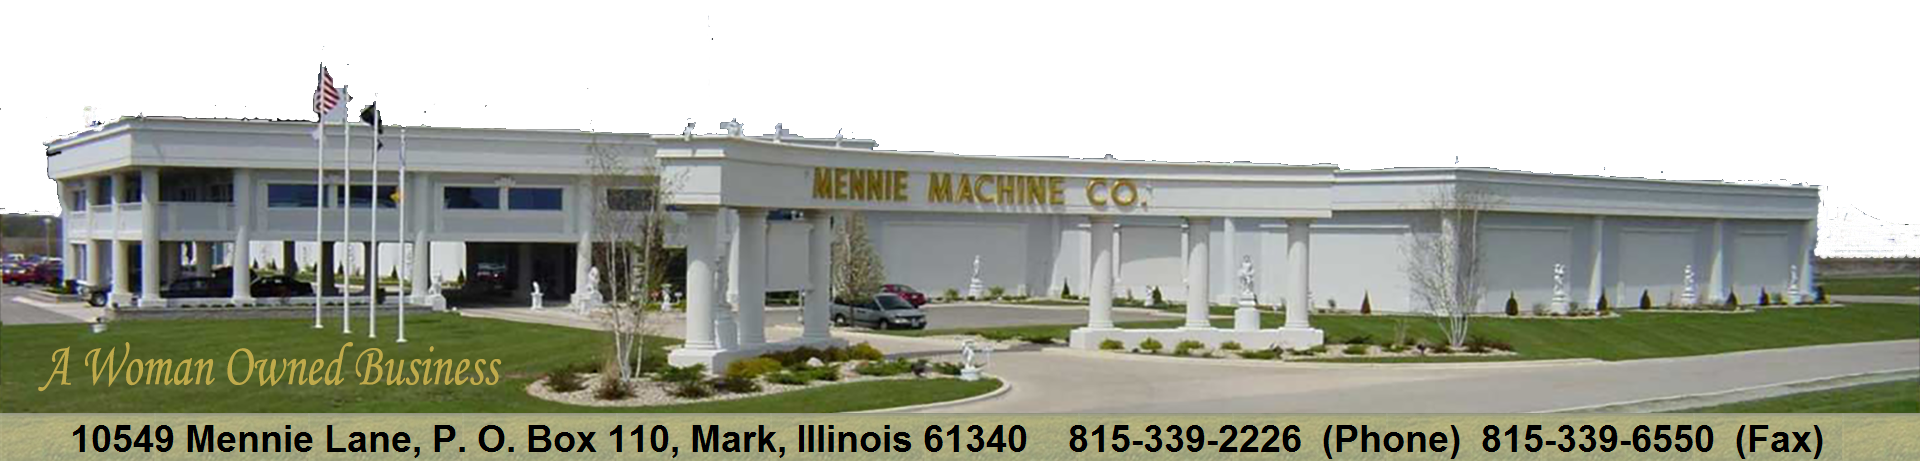 mennie-machine-company